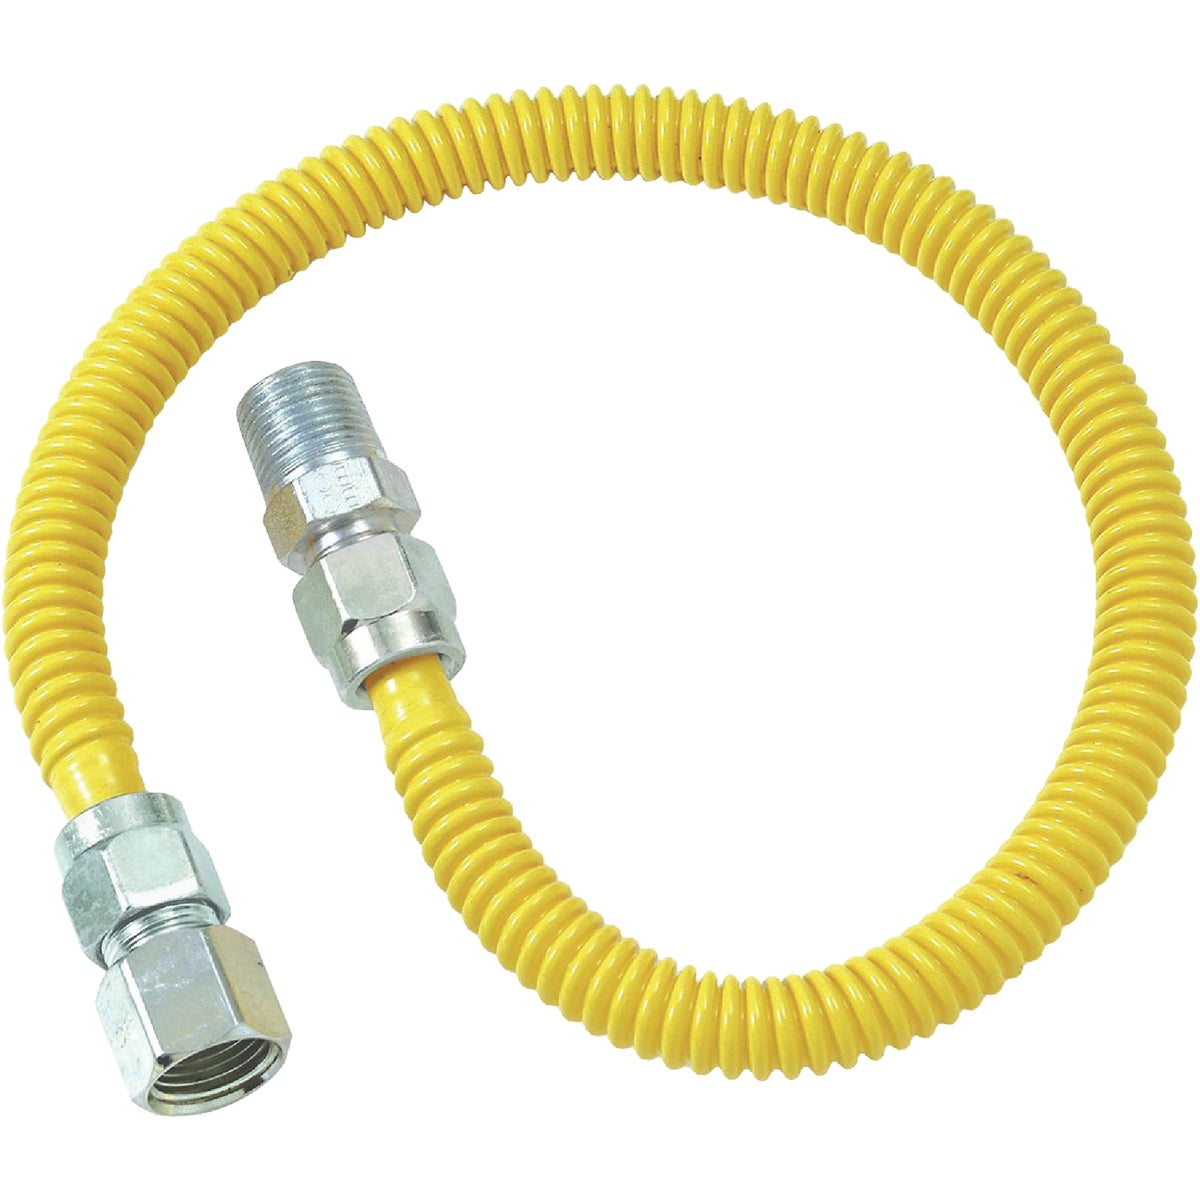 1/2X36 GAS CONNECTOR